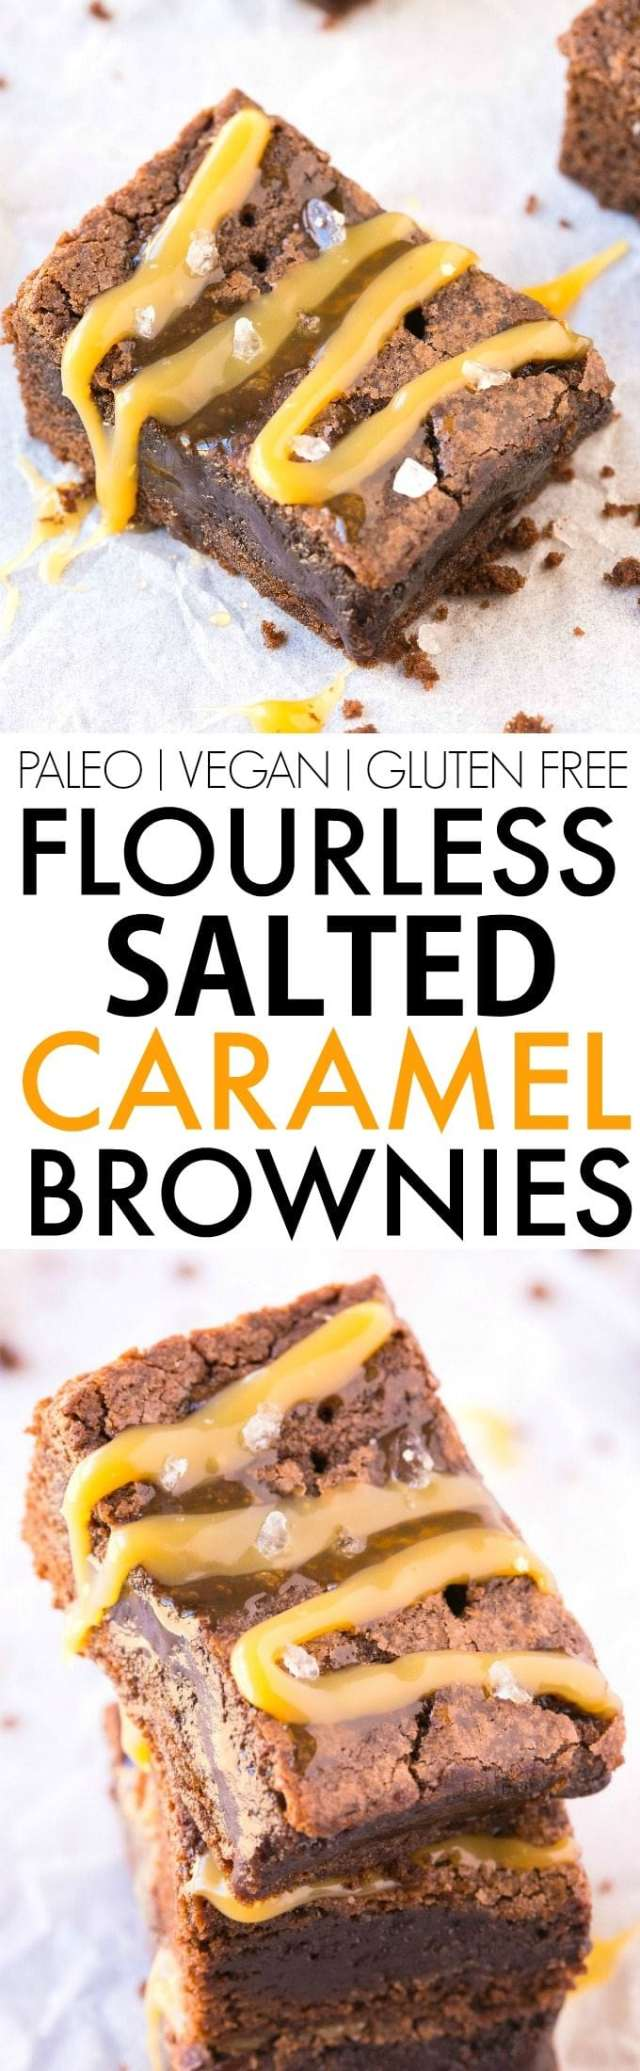 Flourless Salted Caramel Fudge Brownies (V, GF, Paleo)- Healthier flourless fudge brownies using just 6 ingredients and with a clean eating caramel sauce! BETTER than any boxed mix and NO flour or butter! The perfect dessert, holiday treat or snack! {vegan, gluten free, paleo recipe}- thebigmansworld.com